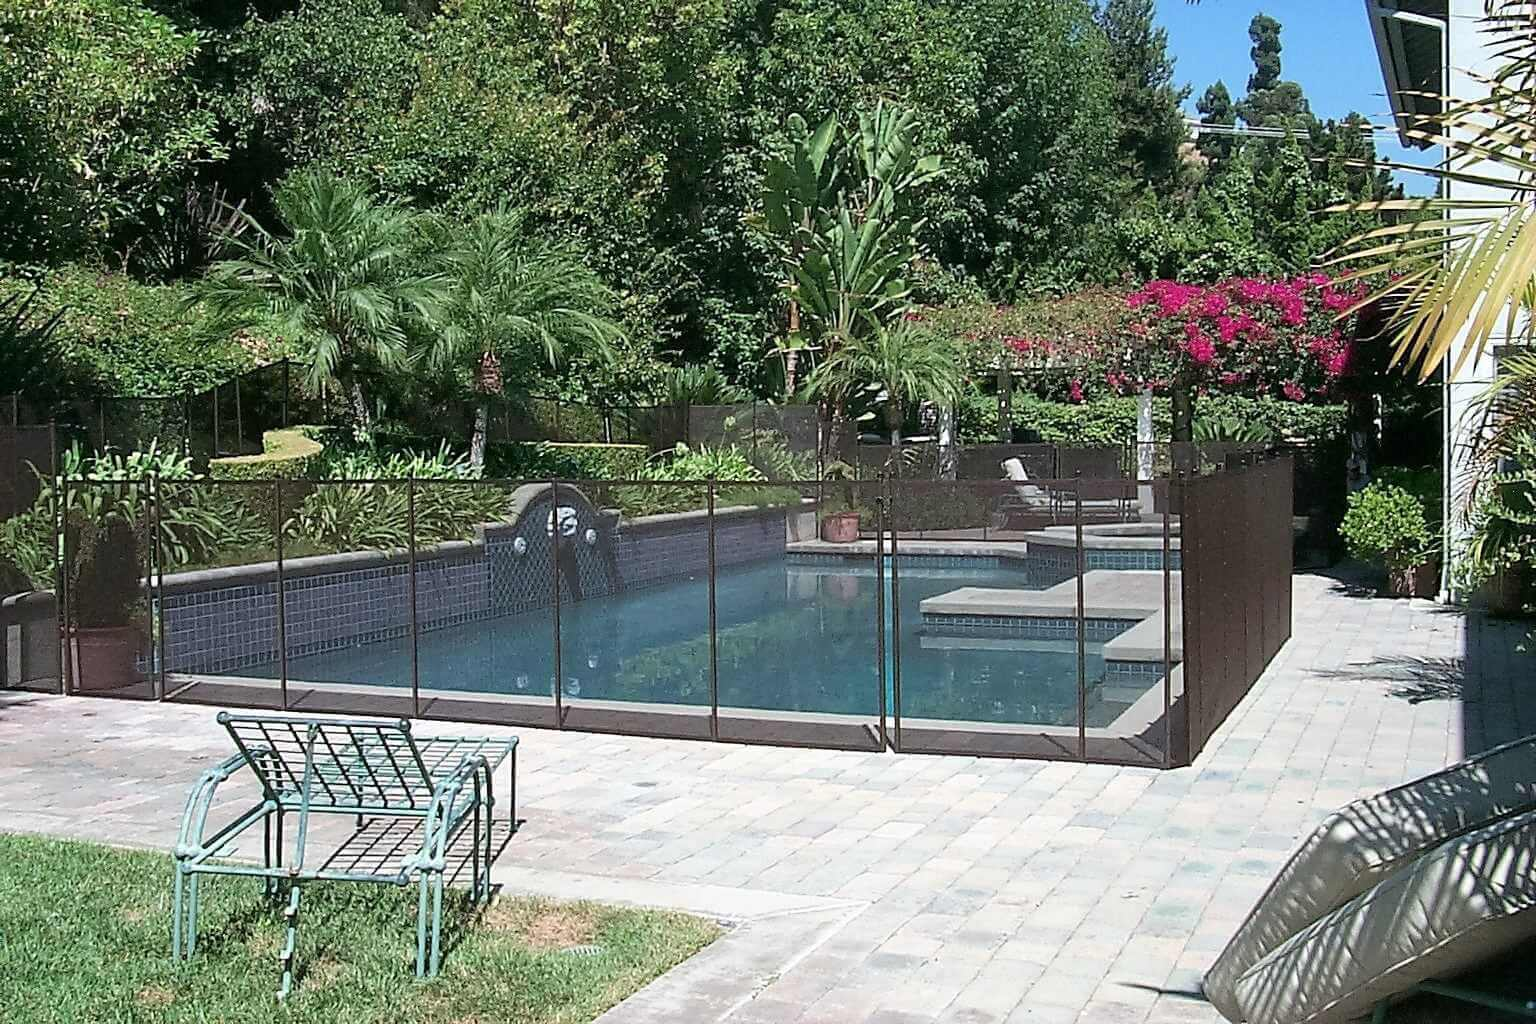 Classic Mesh Pool Fence in Brown